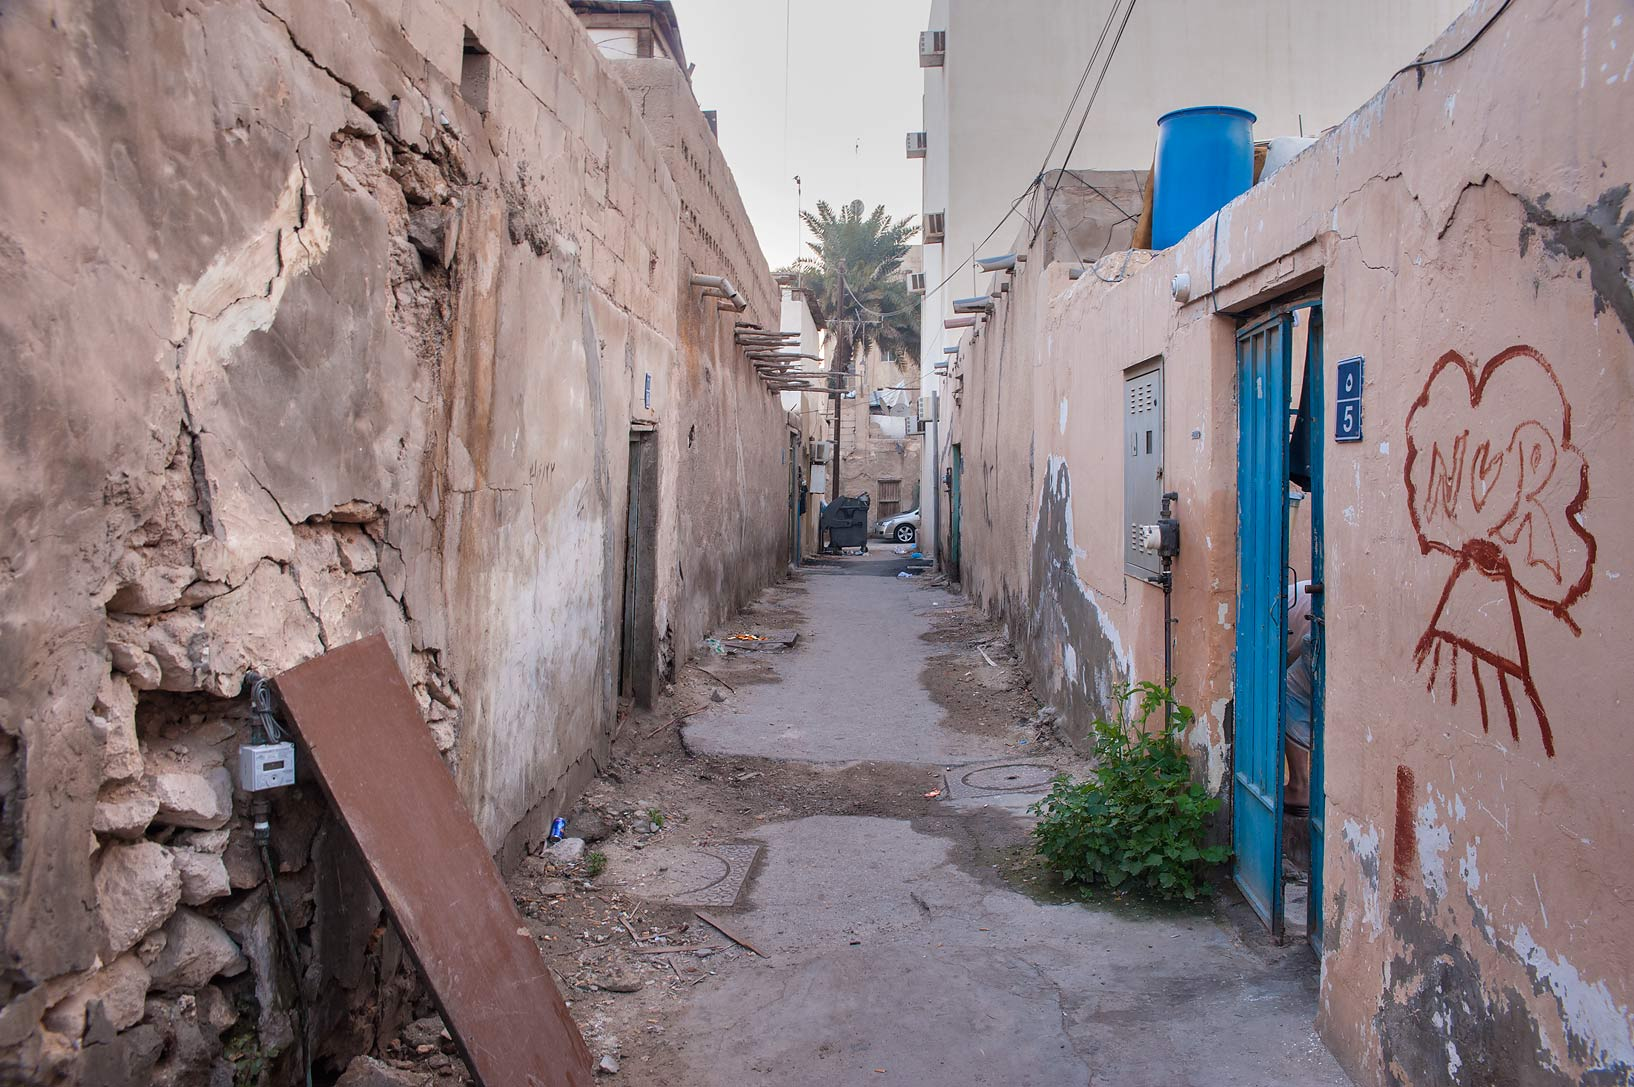 Narrow alleyway (sikka) in Musheirib neighborhood area. Doha, Qatar